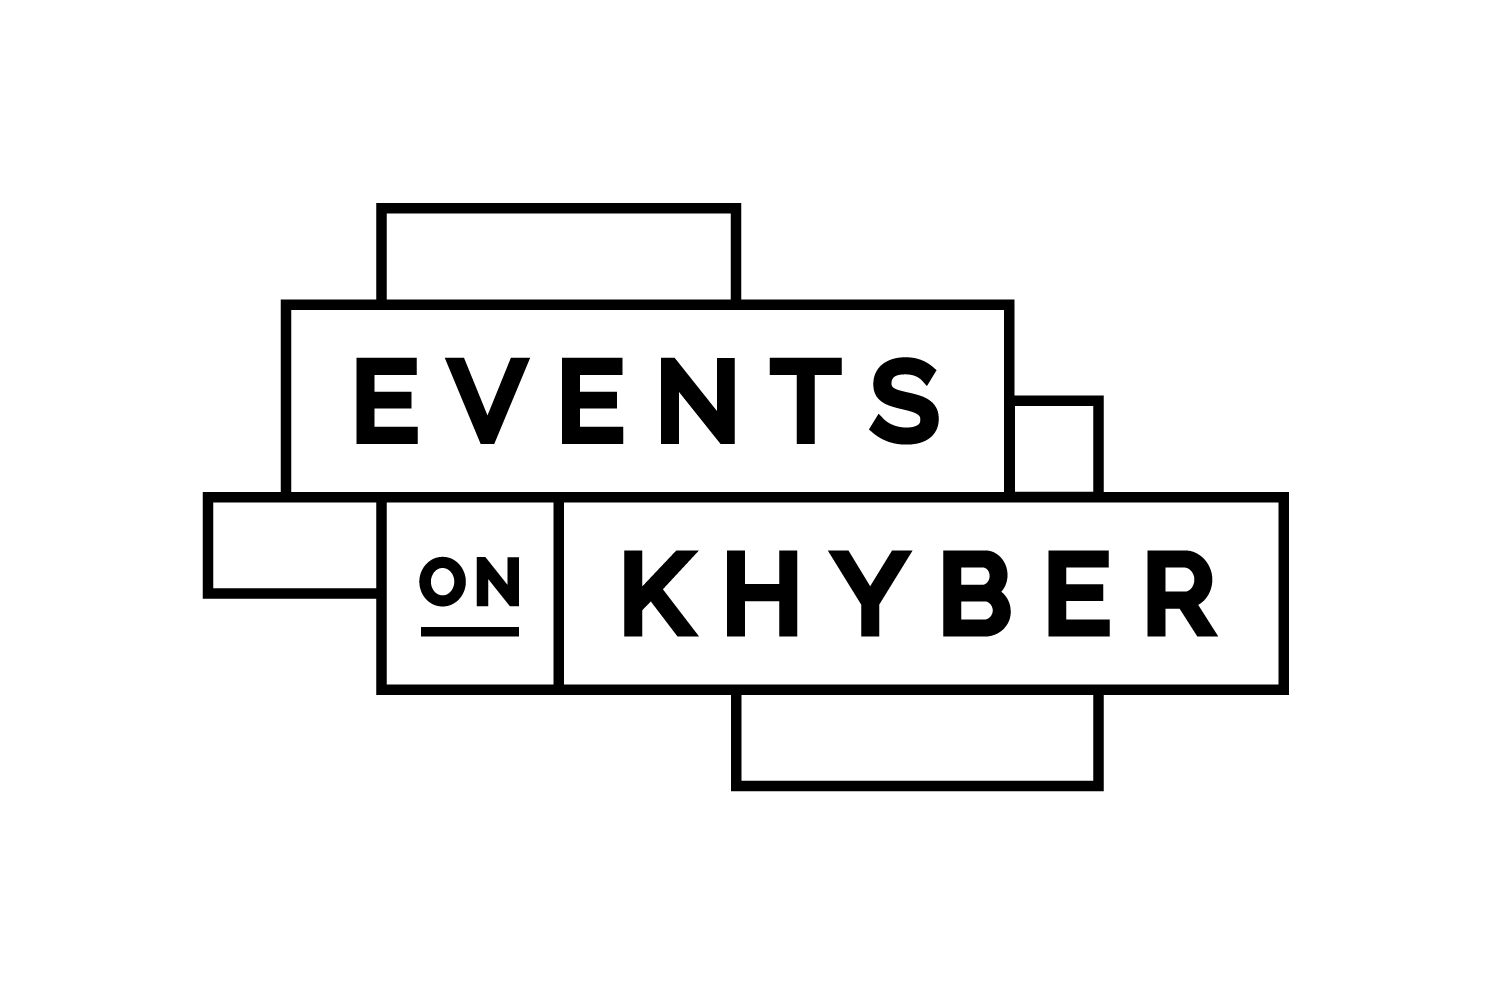 Events on Khyber